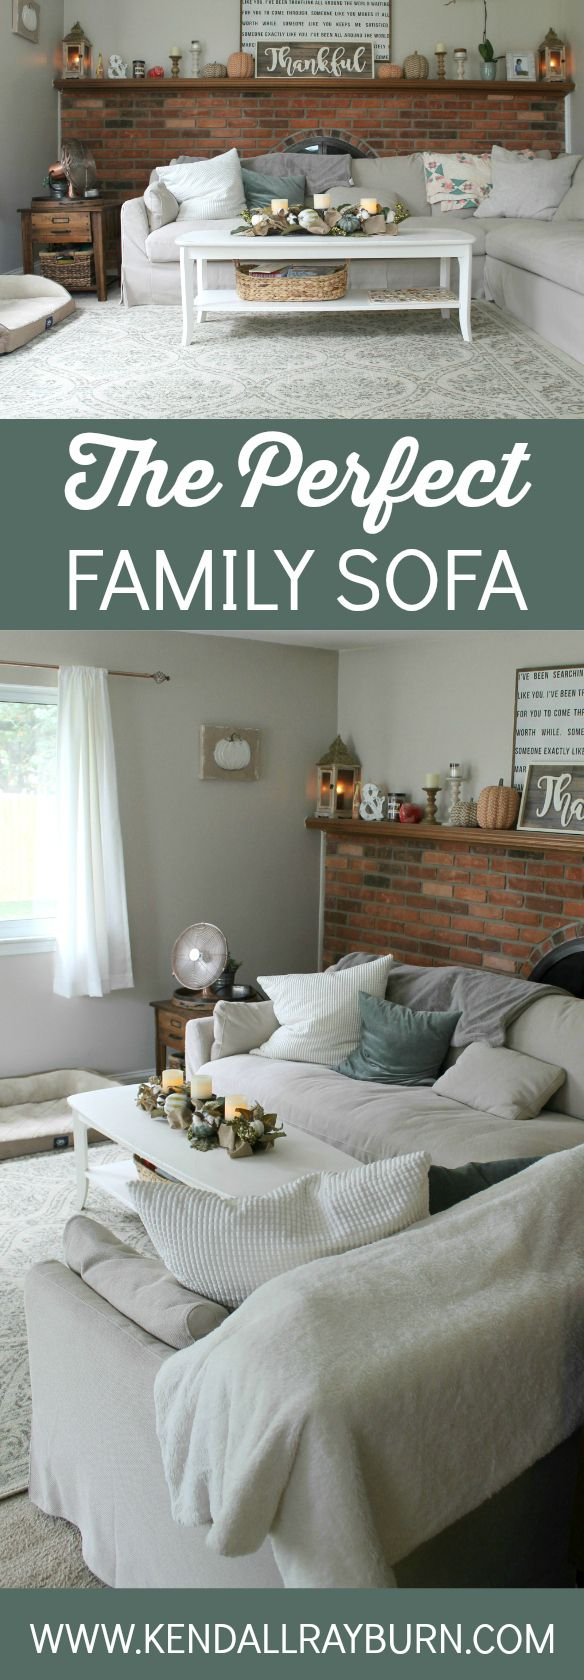 the perfect family sofa pinterest. Black Bedroom Furniture Sets. Home Design Ideas